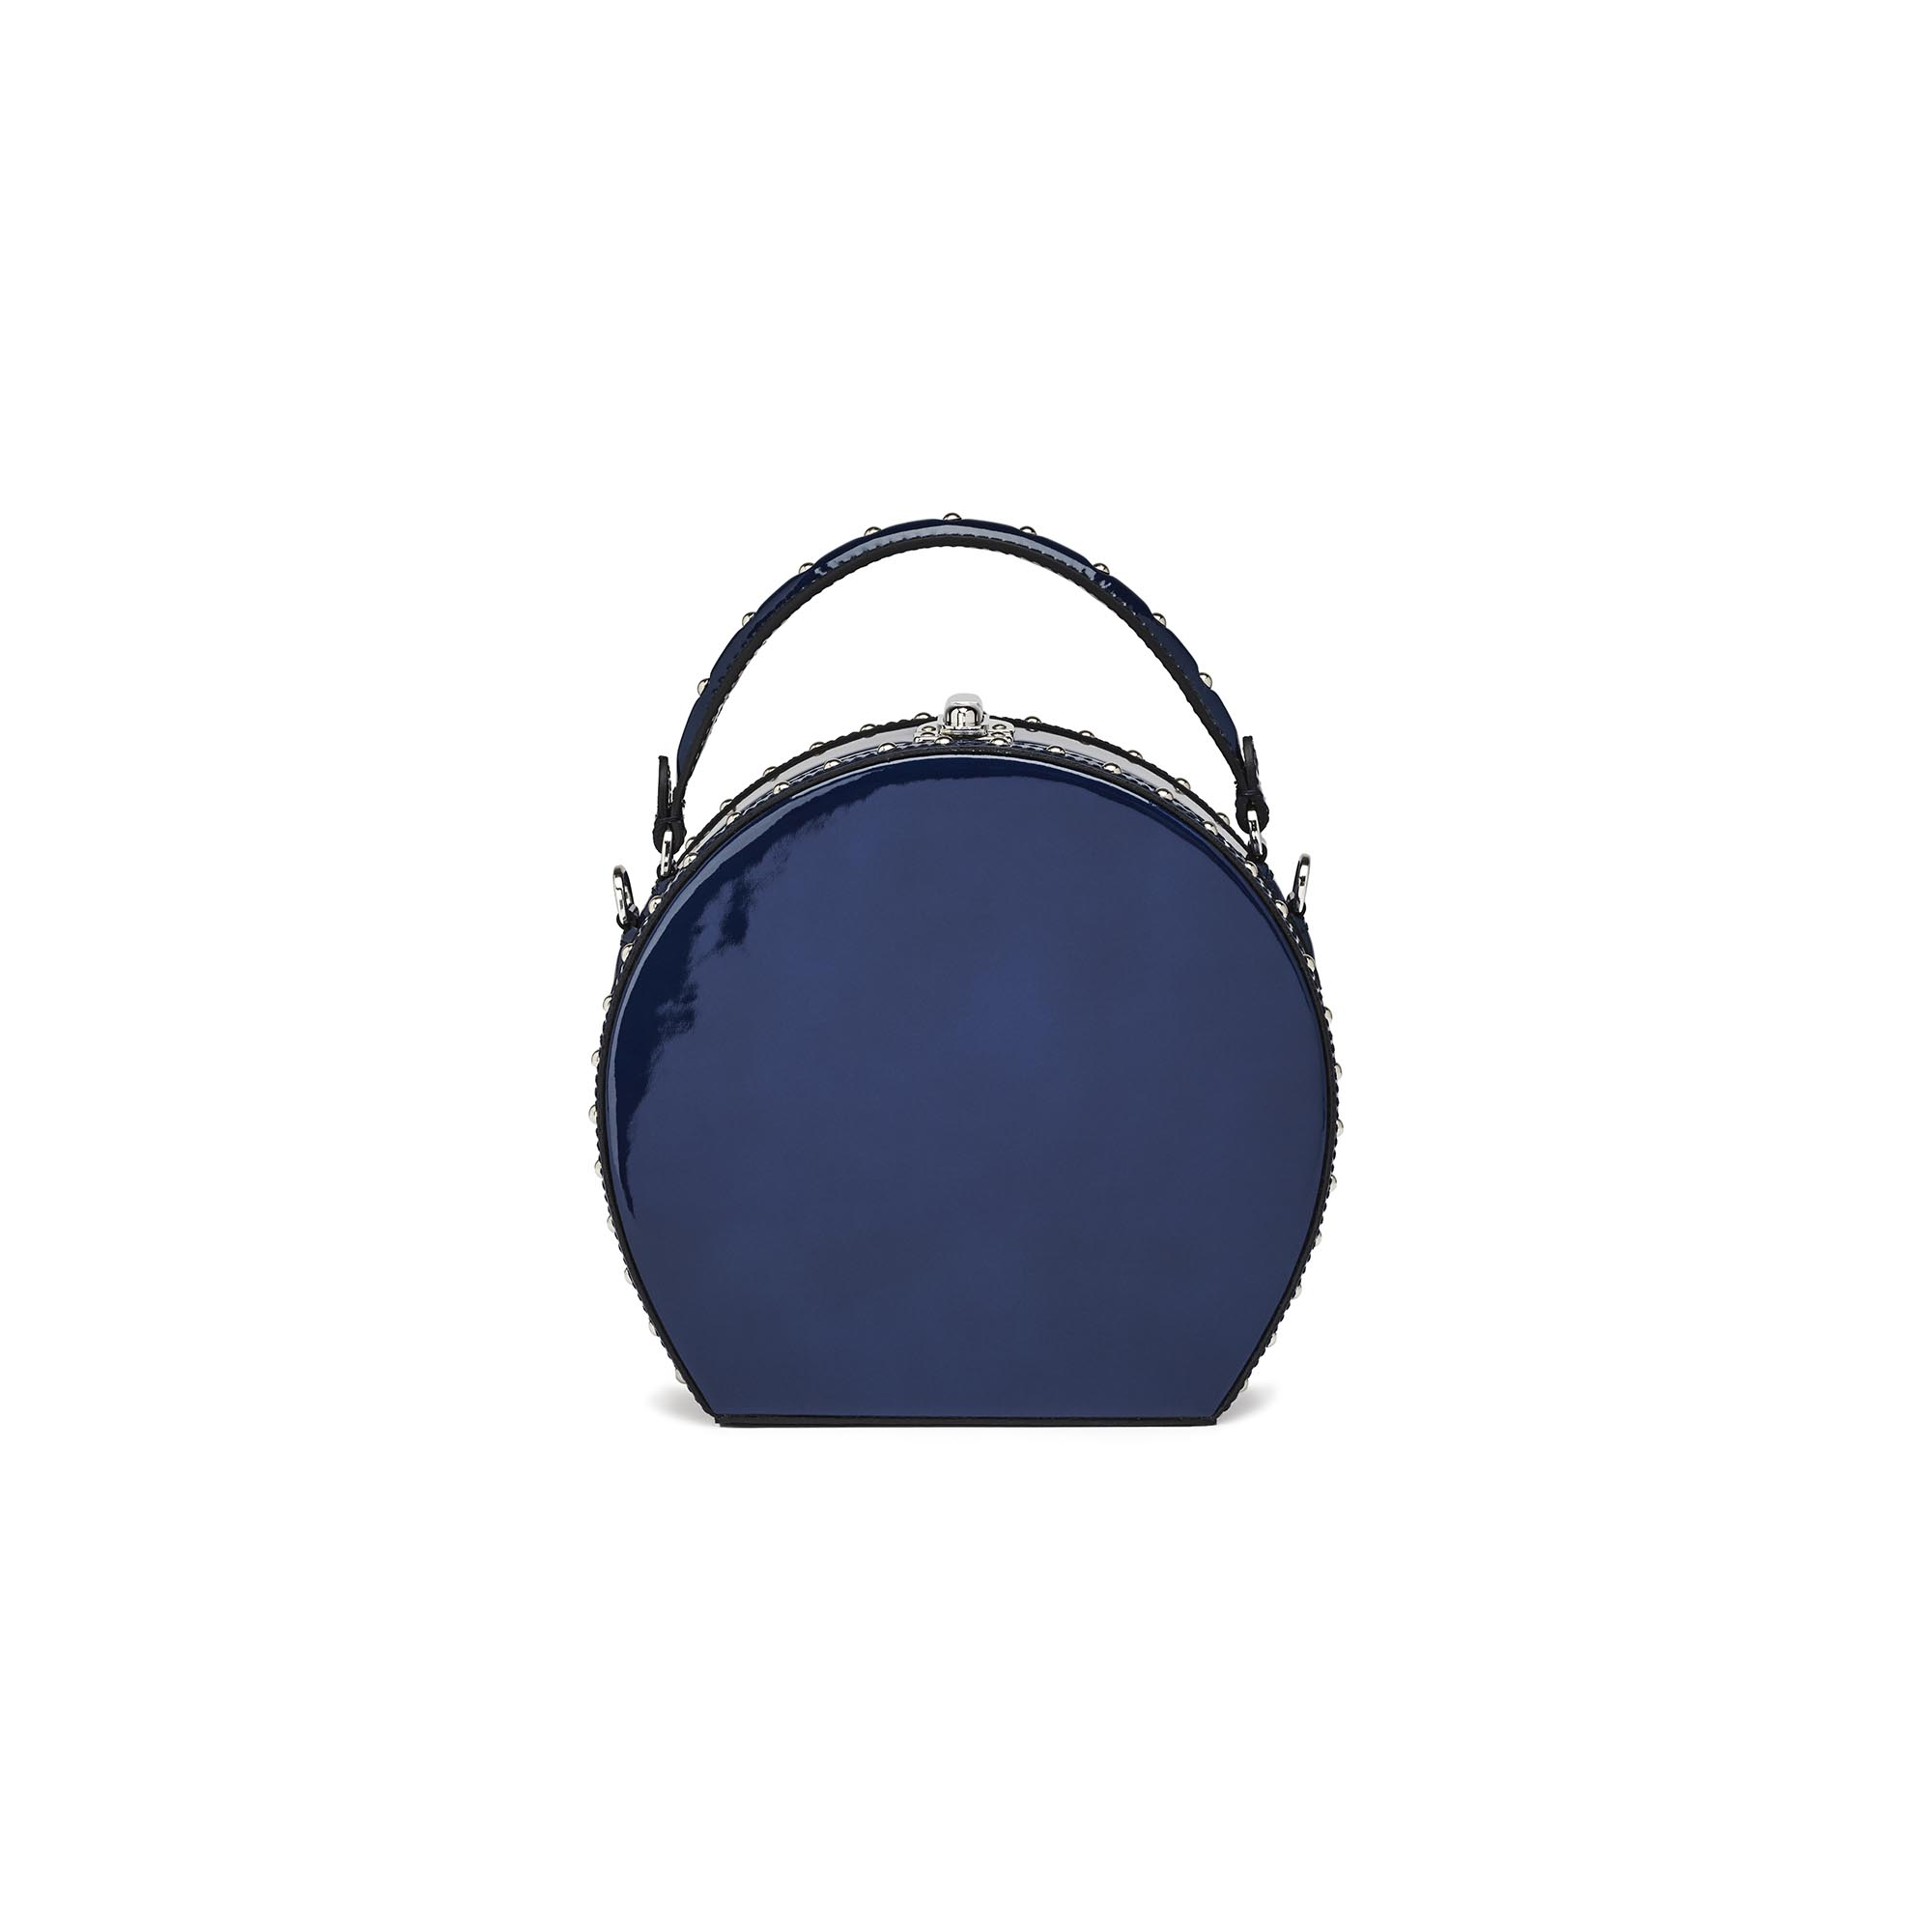 Regular-Bertoncina-dark-blue-patent-leather-bag-Bertoni-1949